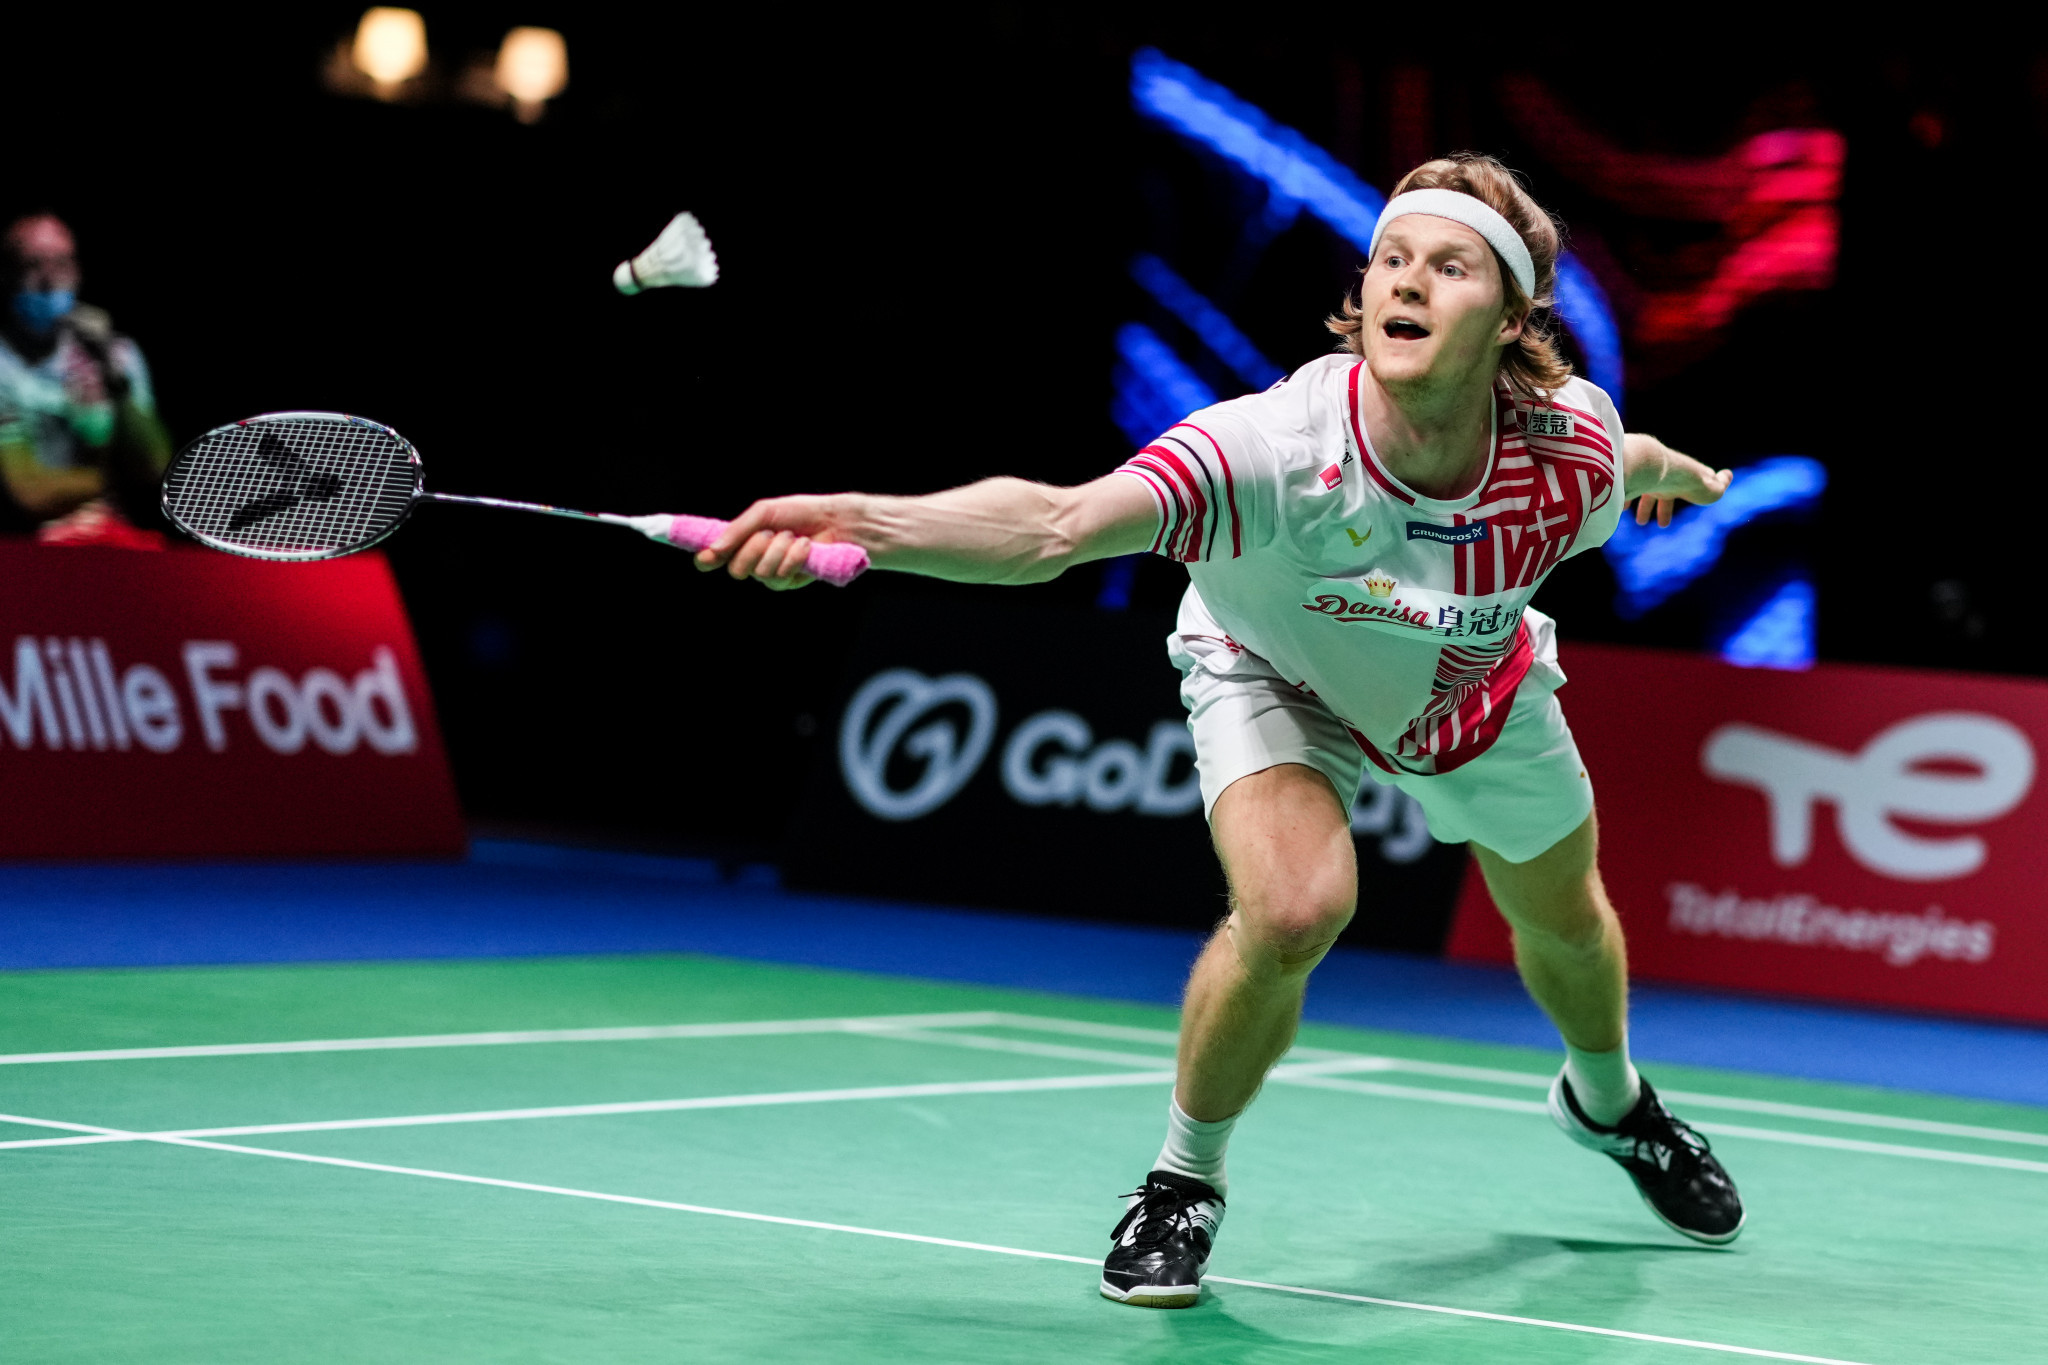 Third seed Antonsen suffers another shock defeat as badminton's French Open gets underway